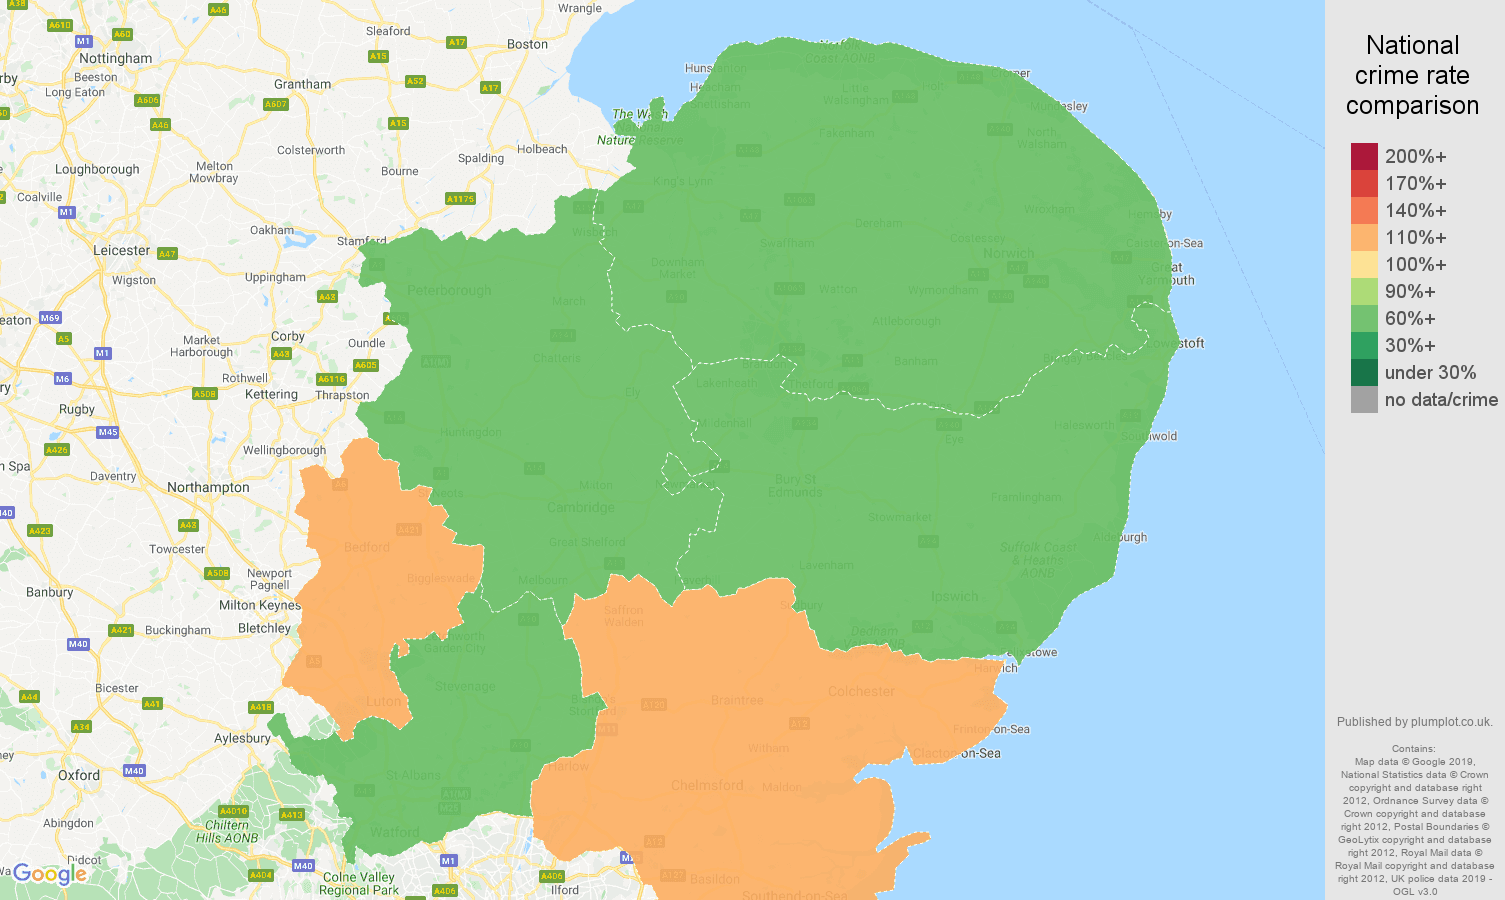 East of England public order crime rate comparison map